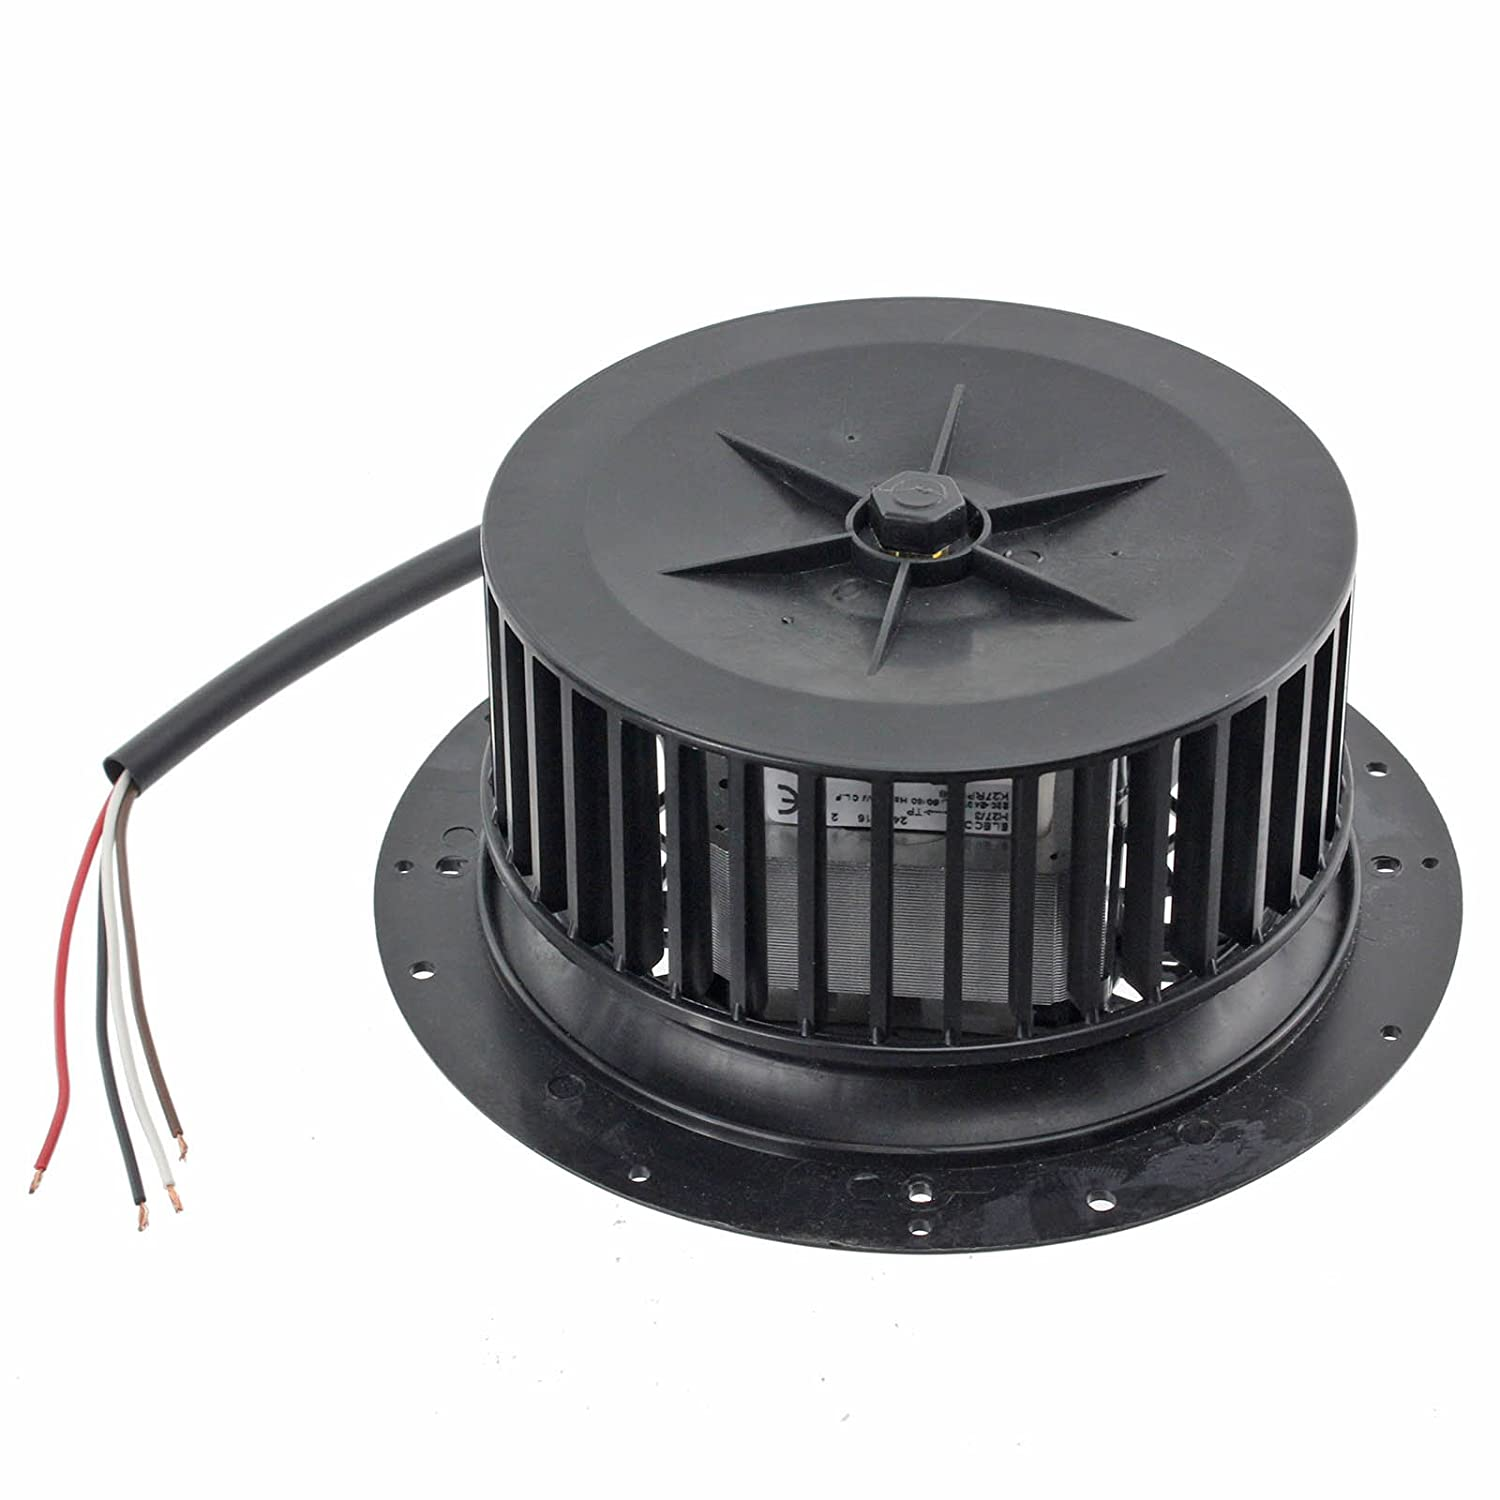 Spares2go Universal 135w Cooker Hood Motor Fan Unit Clockwise Wiring Electric Oven Uk Free Download Diagrams Pictures Right Hand Directional Kitchen Home